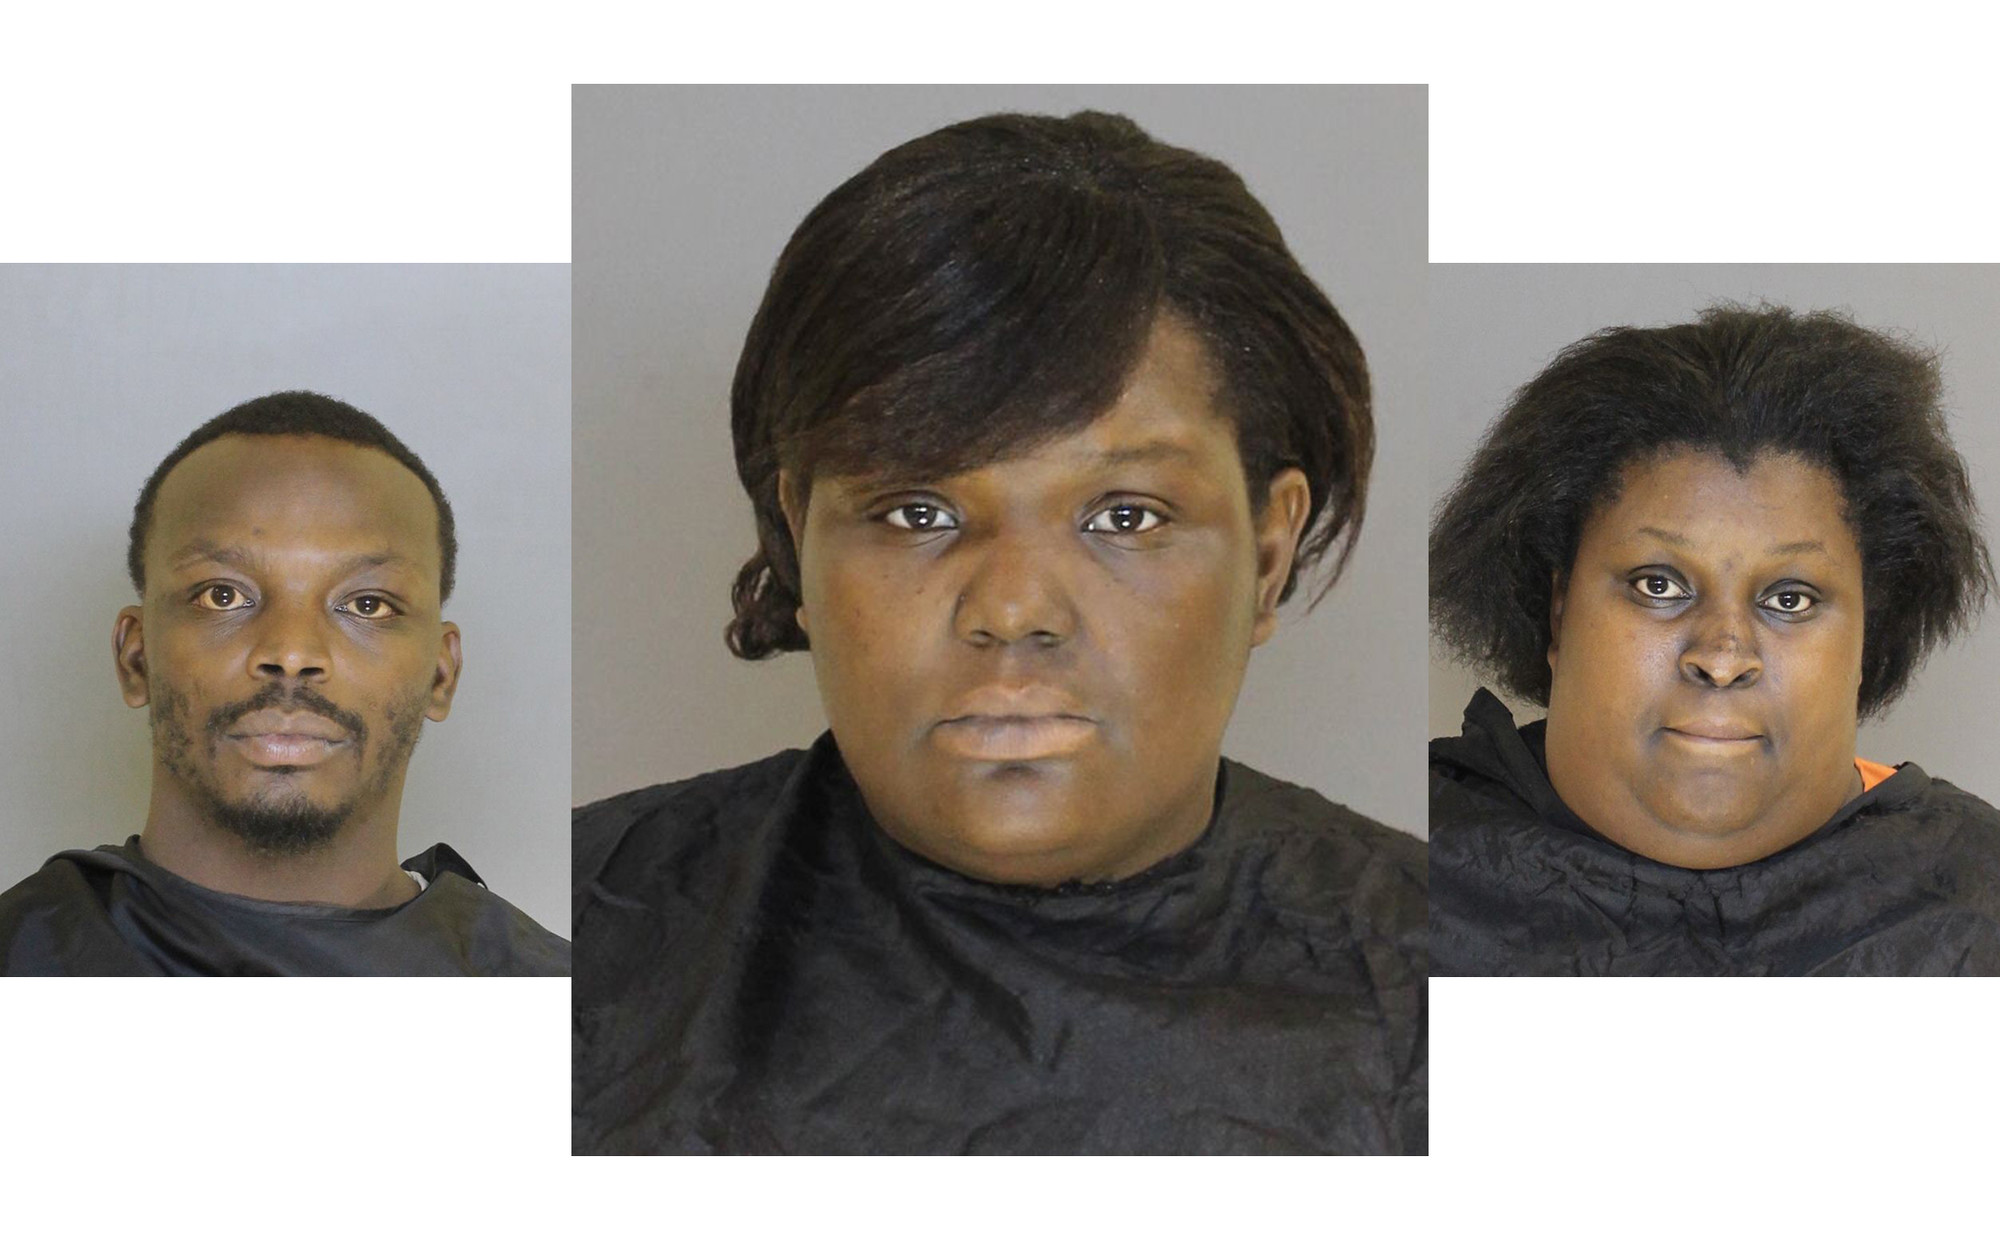 From left, Rodney Burgess remains at large, Kimberly Burgess turned herself in Tuesday, and Aireal Johnson was arrested earlier in connection with the Feb. 1 shooting of a 7-year-old boy in a home.